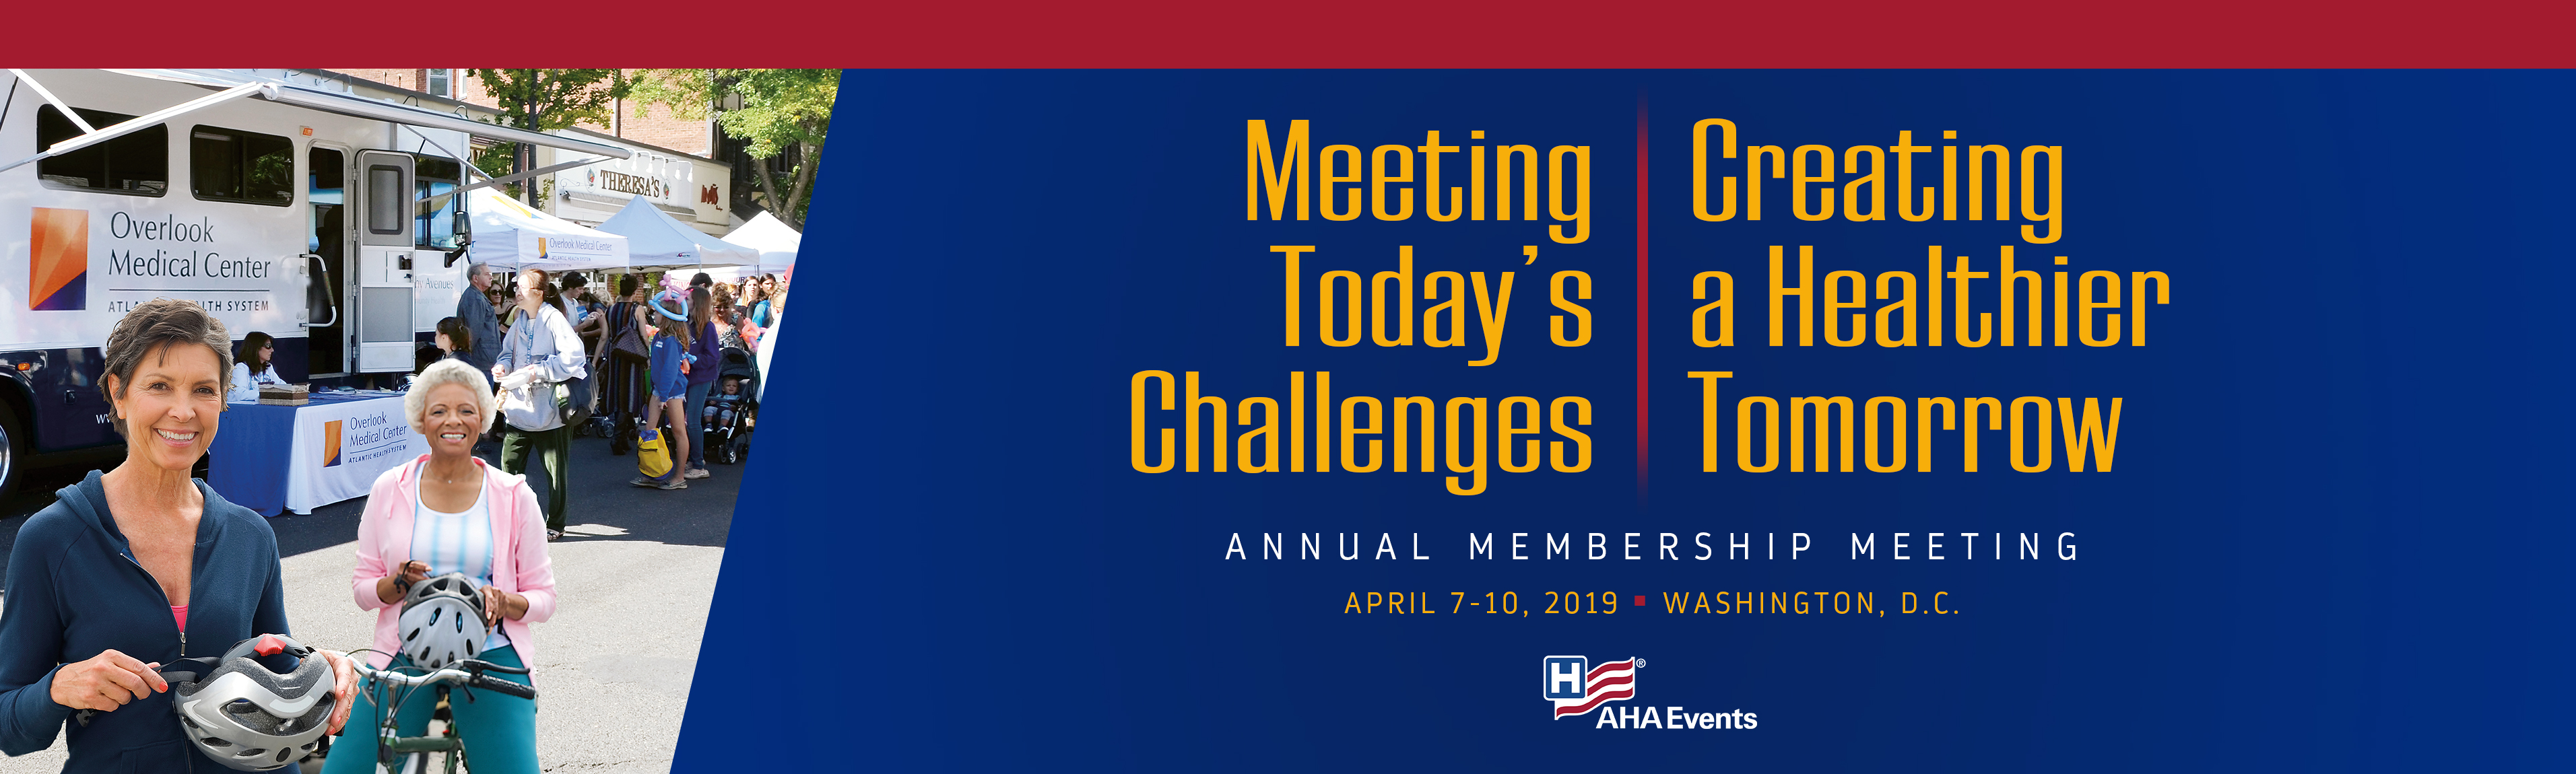 2019 Annual Meeting Image